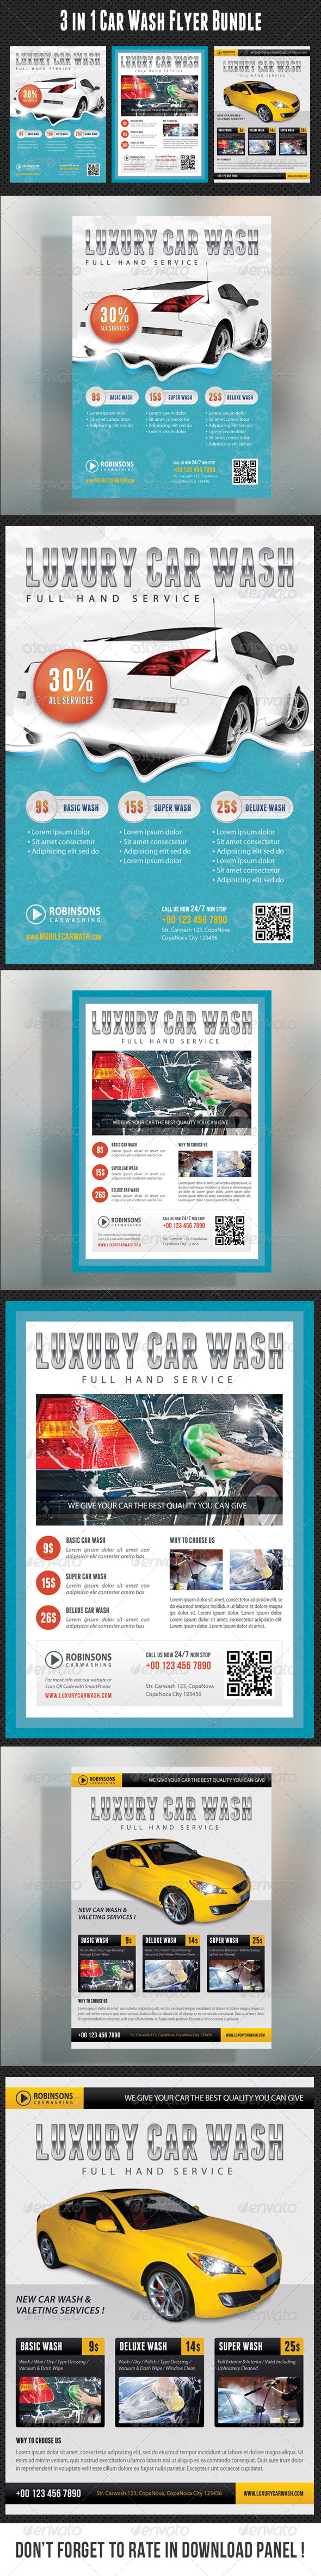 GraphicRiver 3 in 1 Car Wash Flyers Bundle 01 8002358